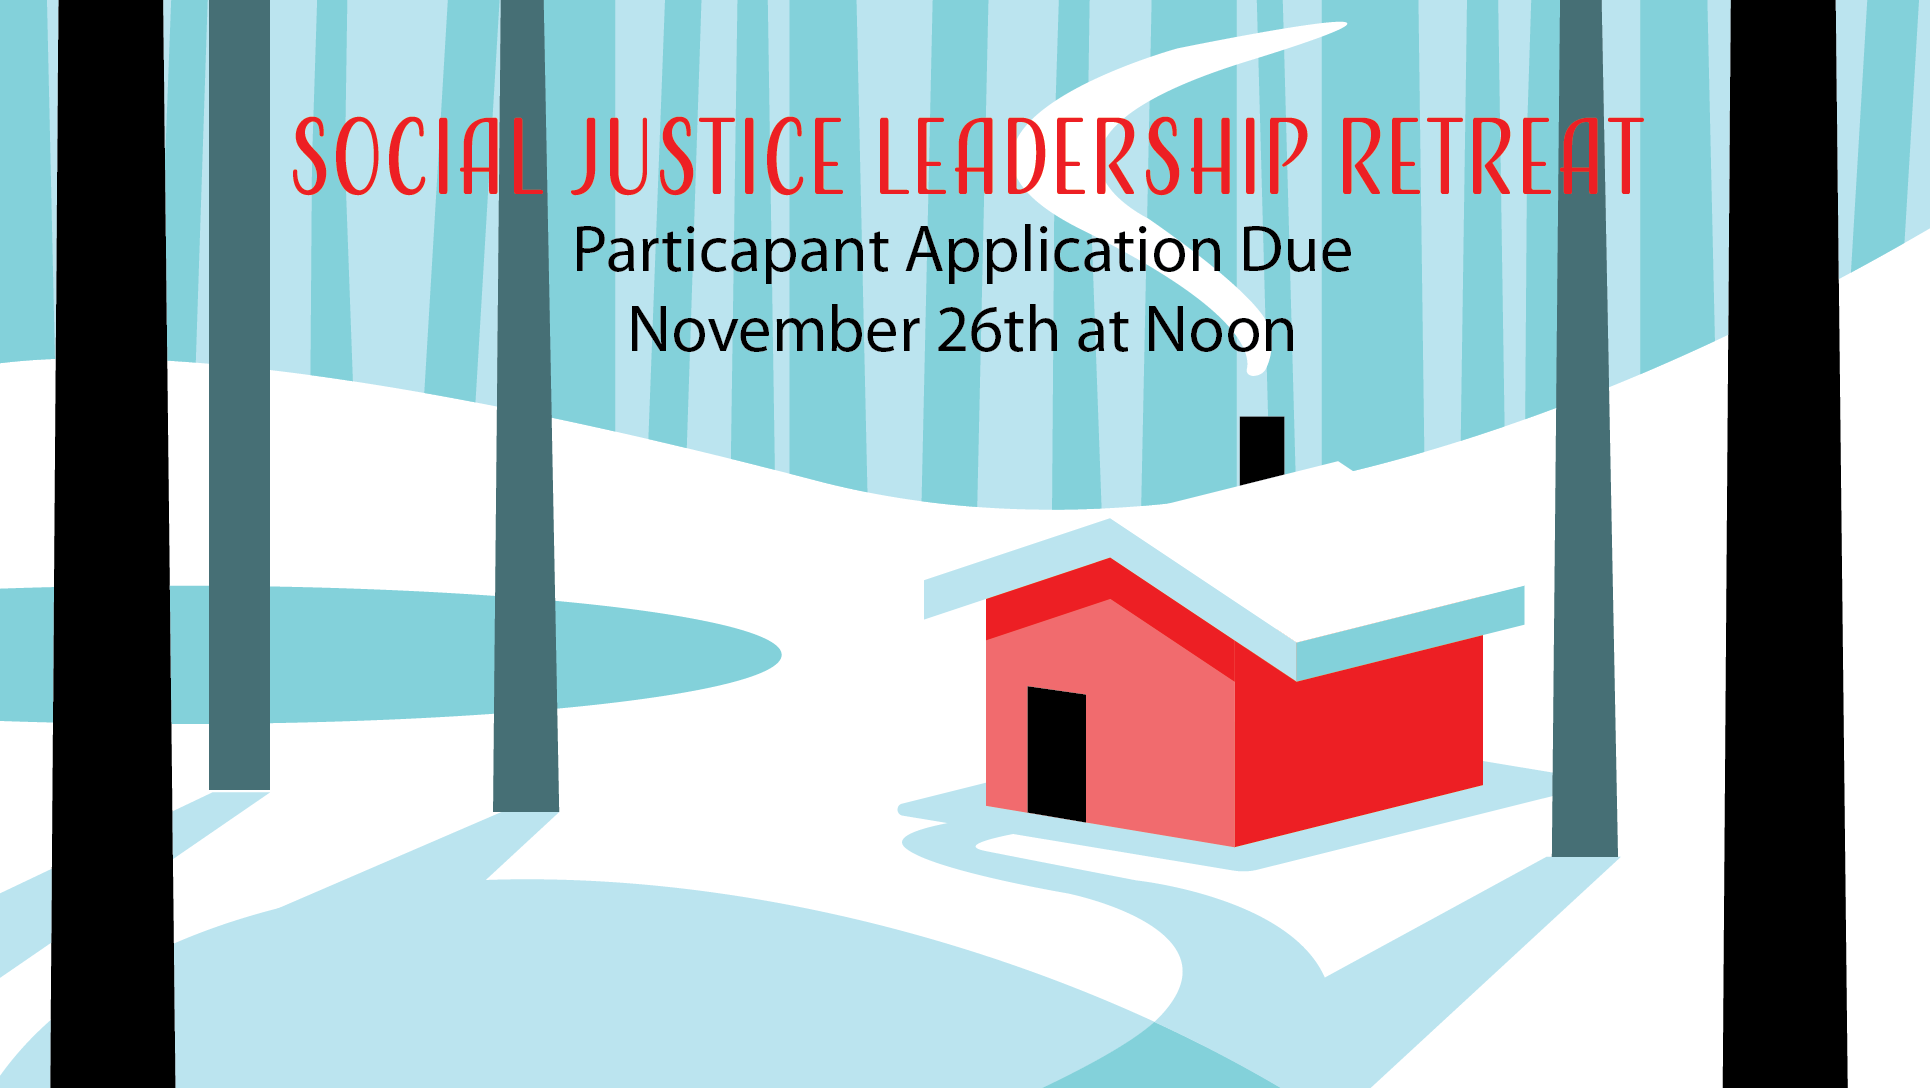 Social Justice Leadership Retreat